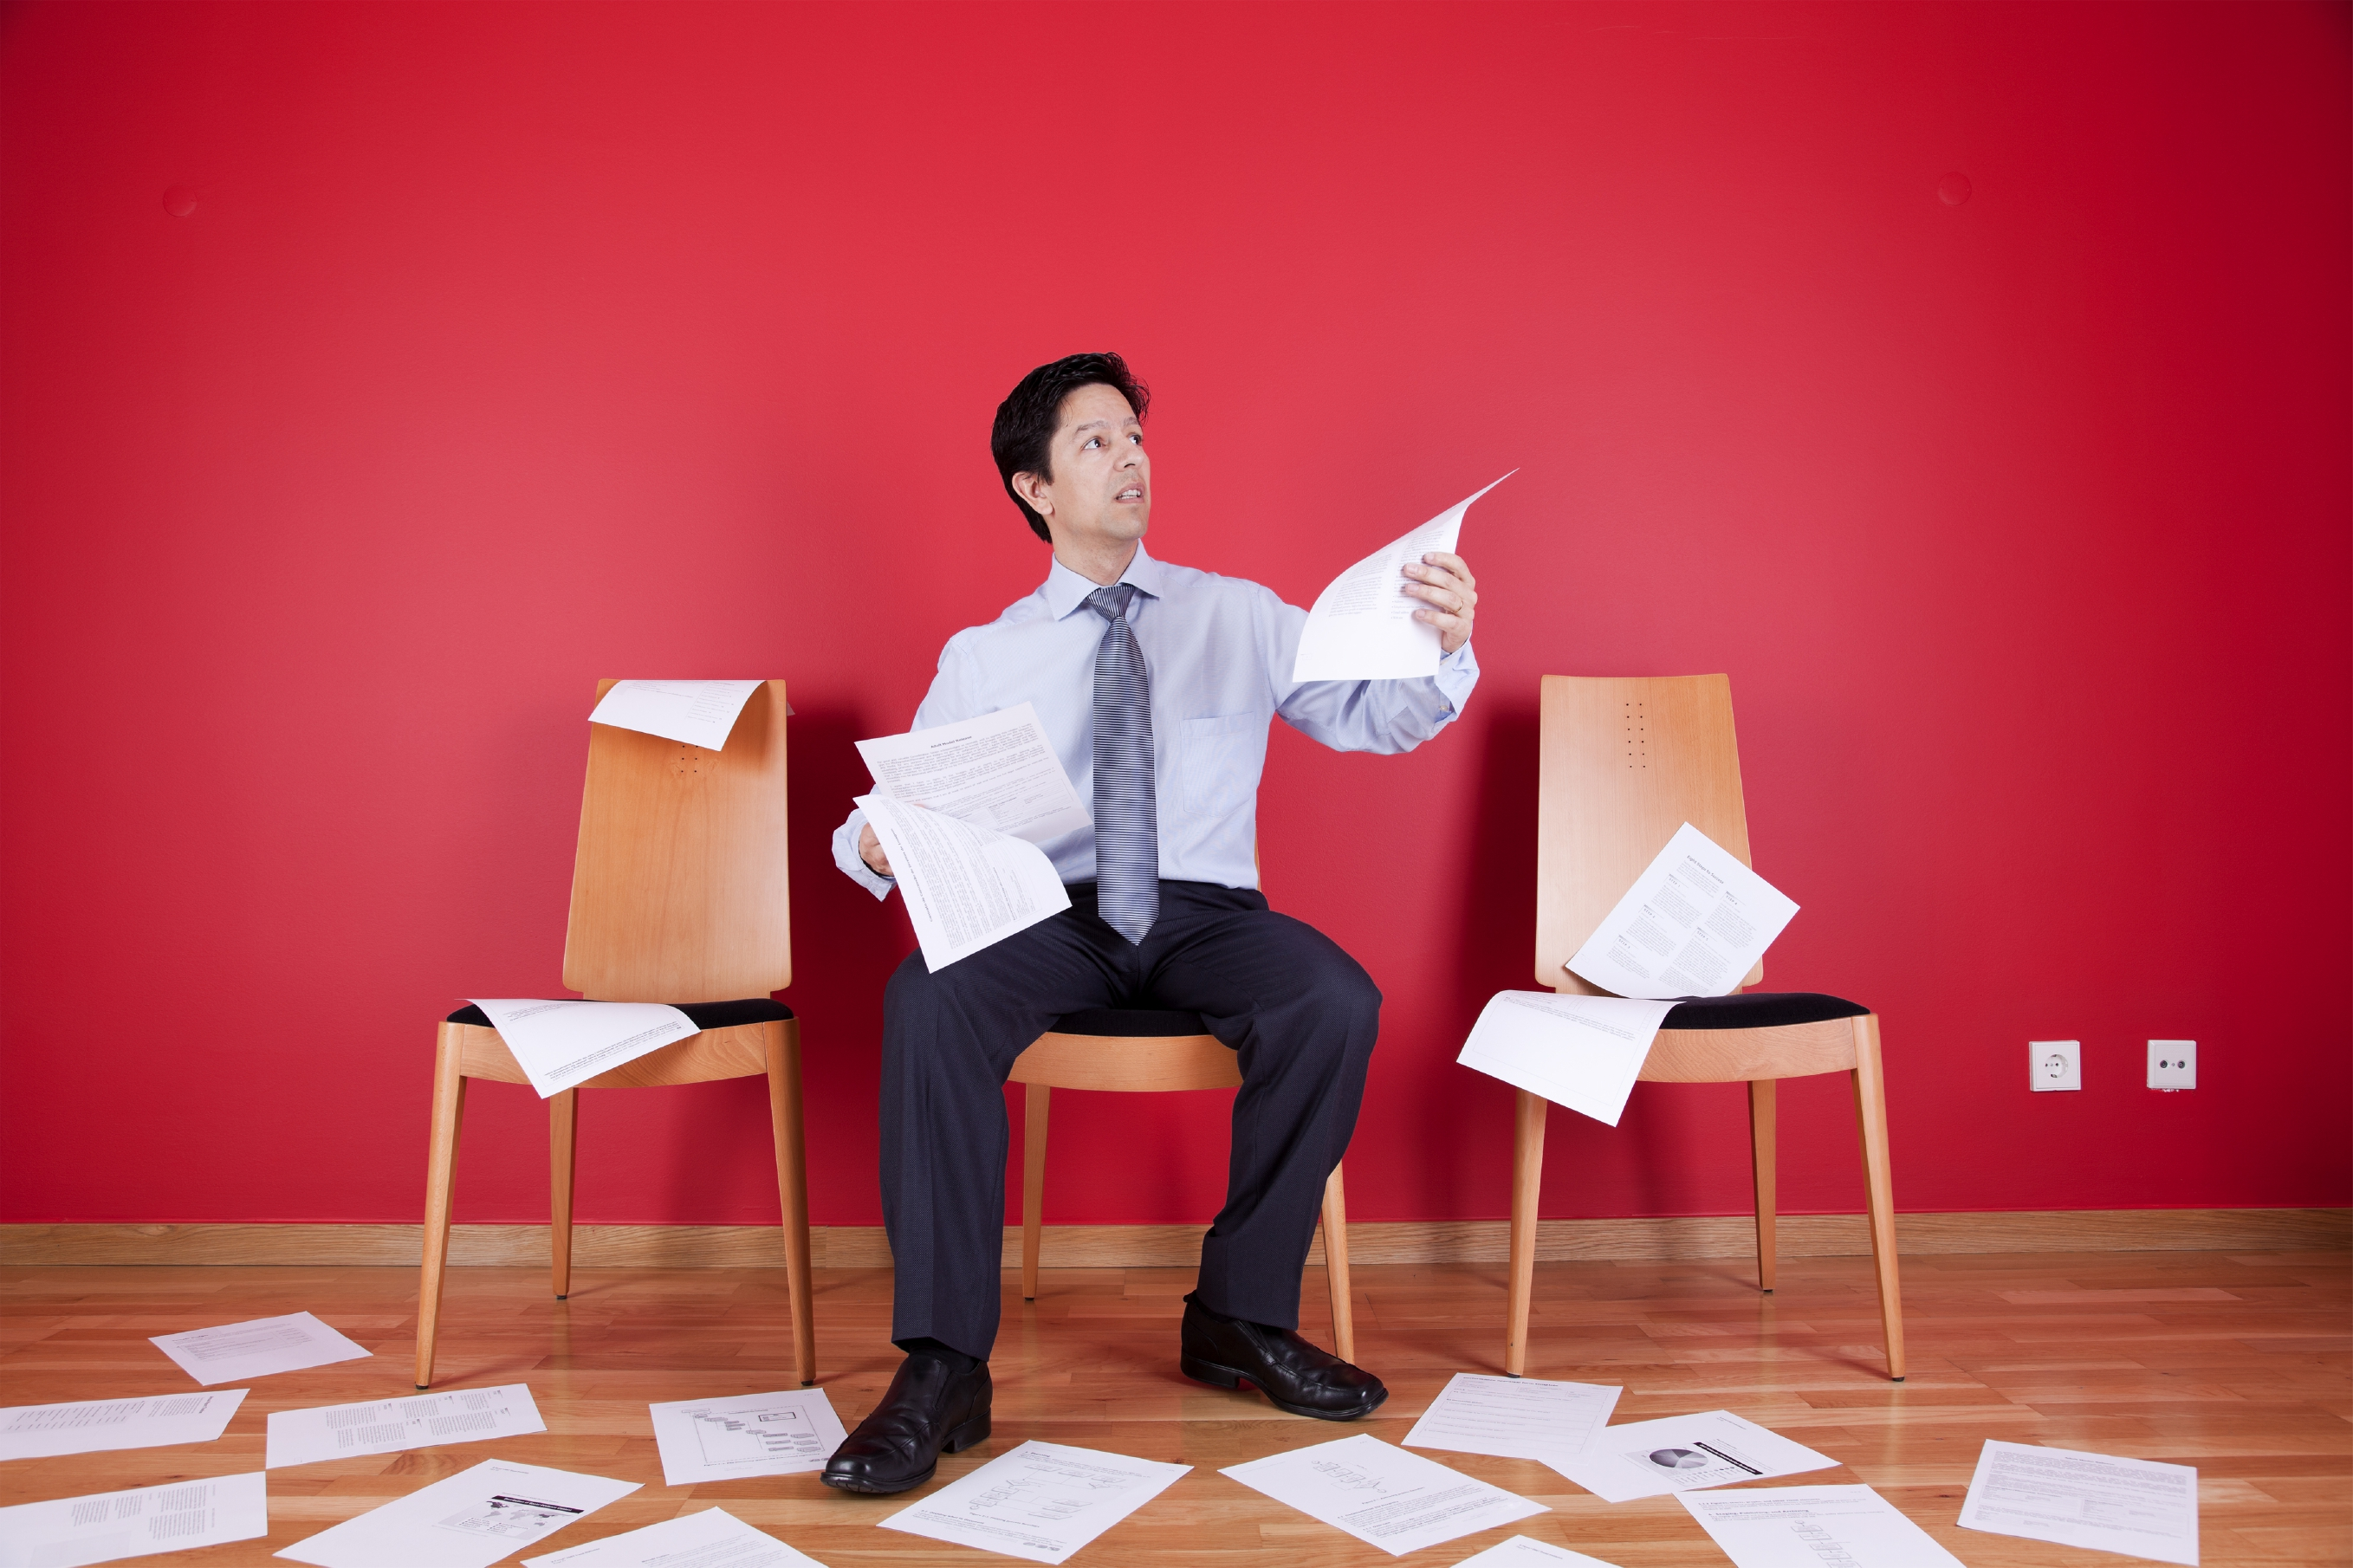 Business Man with papers to archive and store